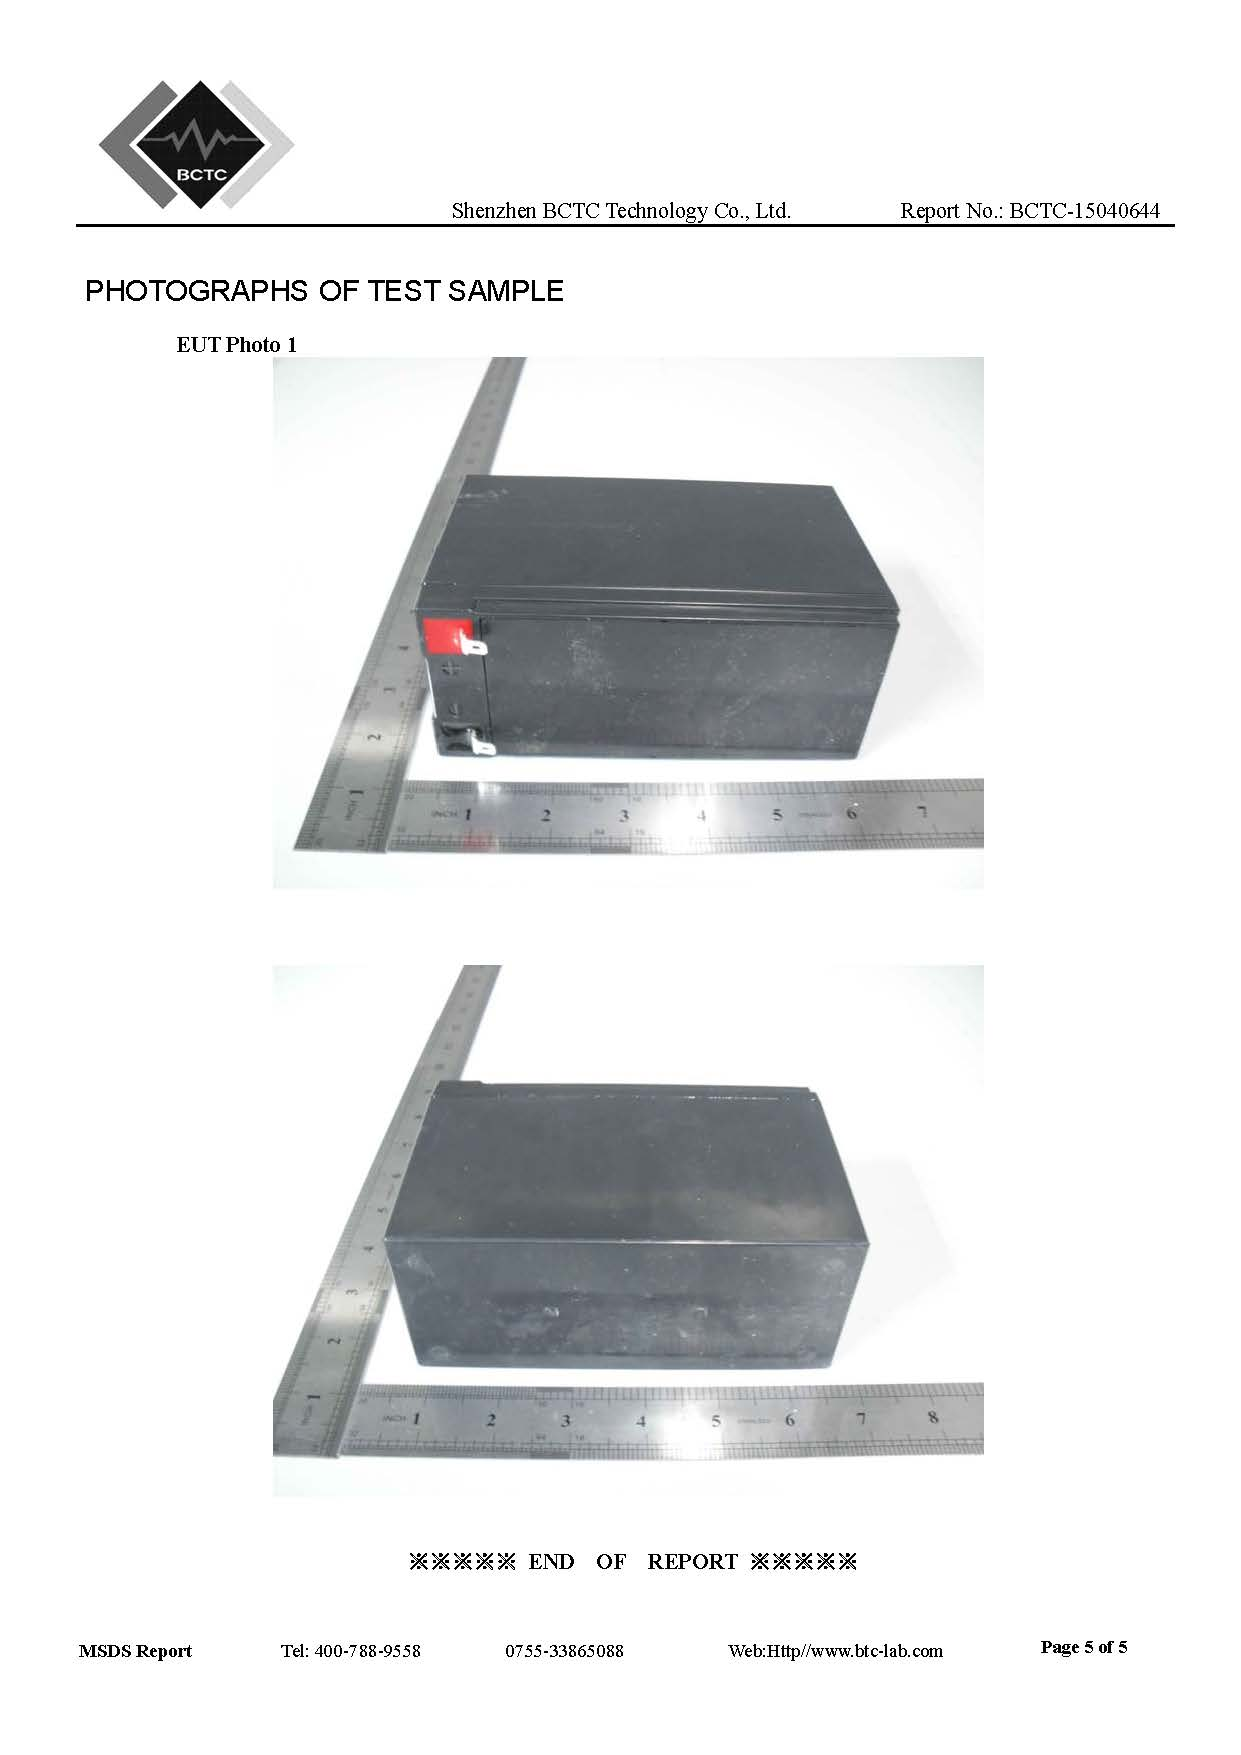 MSDS FOR BATTERY 5